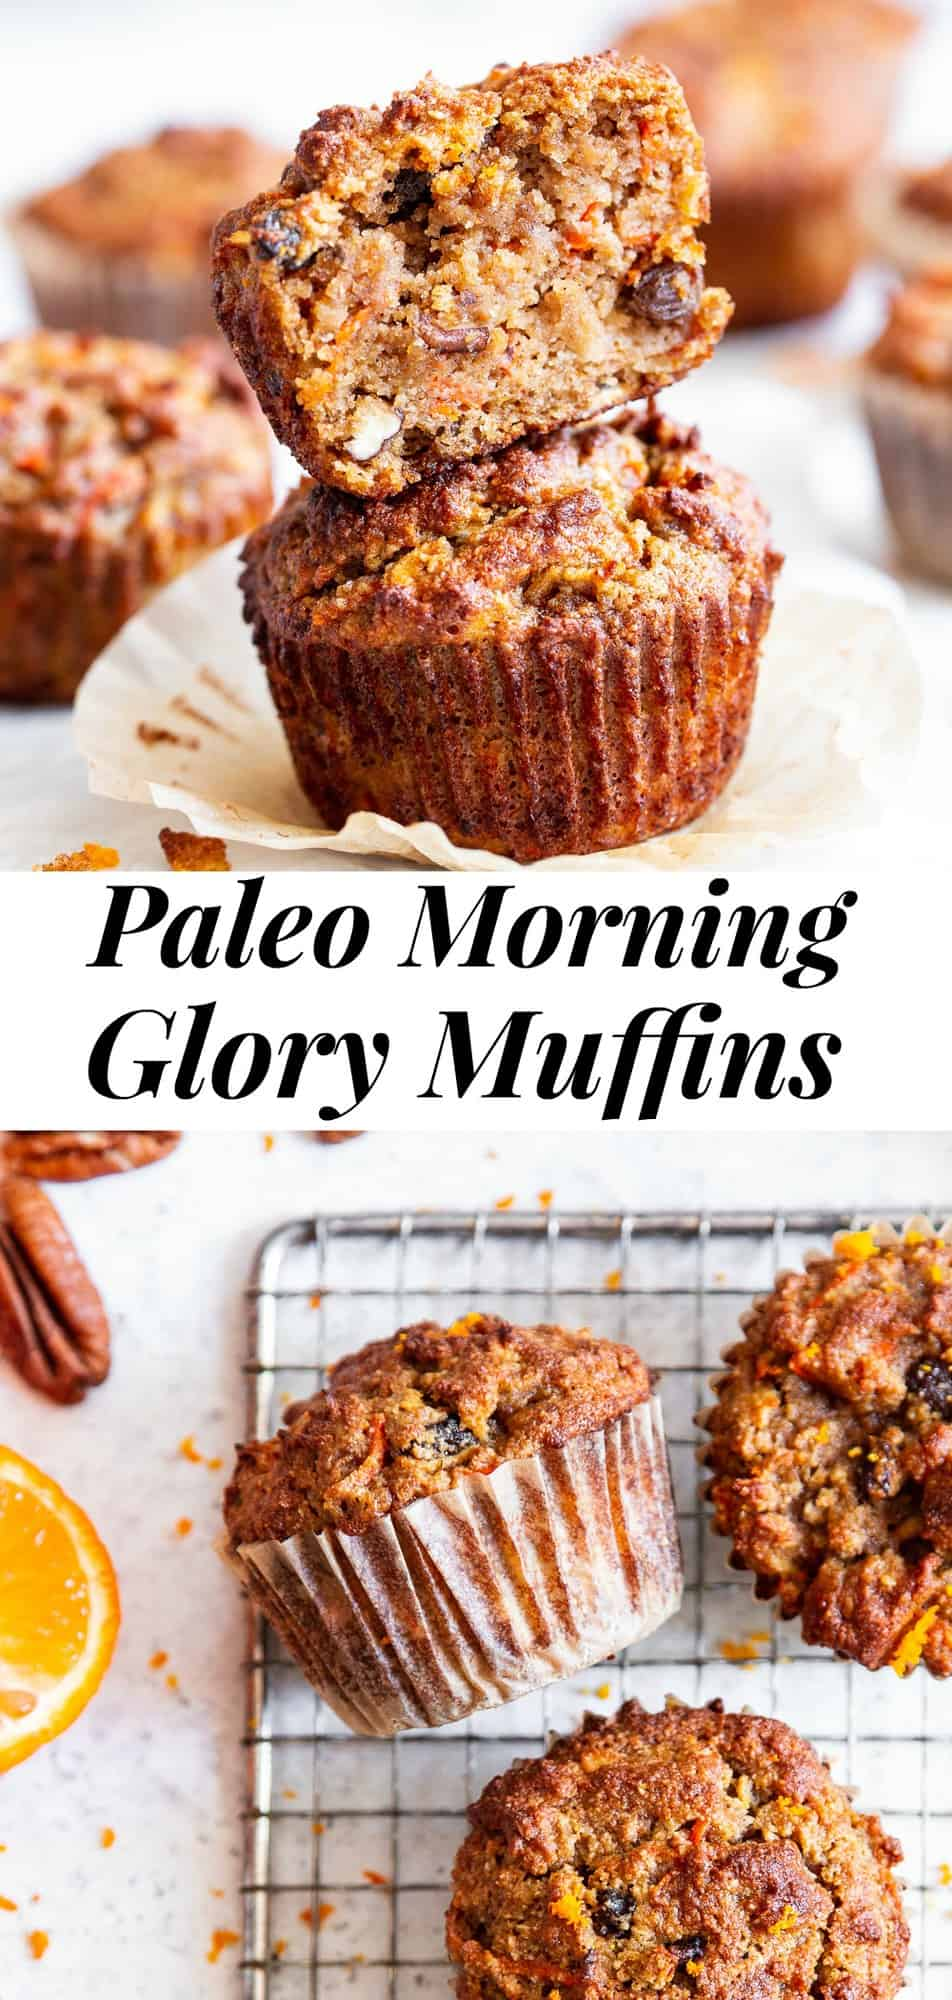 These Paleo Morning Glory Muffins are perfect for breakfast and snacking! Loaded with goodies like apples, carrots, raisins and pecans and flavored with orange zest, these tender and moist muffins absolutely delicious, healthy, gluten free, grain free, dairy free, and refined sugar free. #paleo #glutenfree #paleobaking #cleaneating